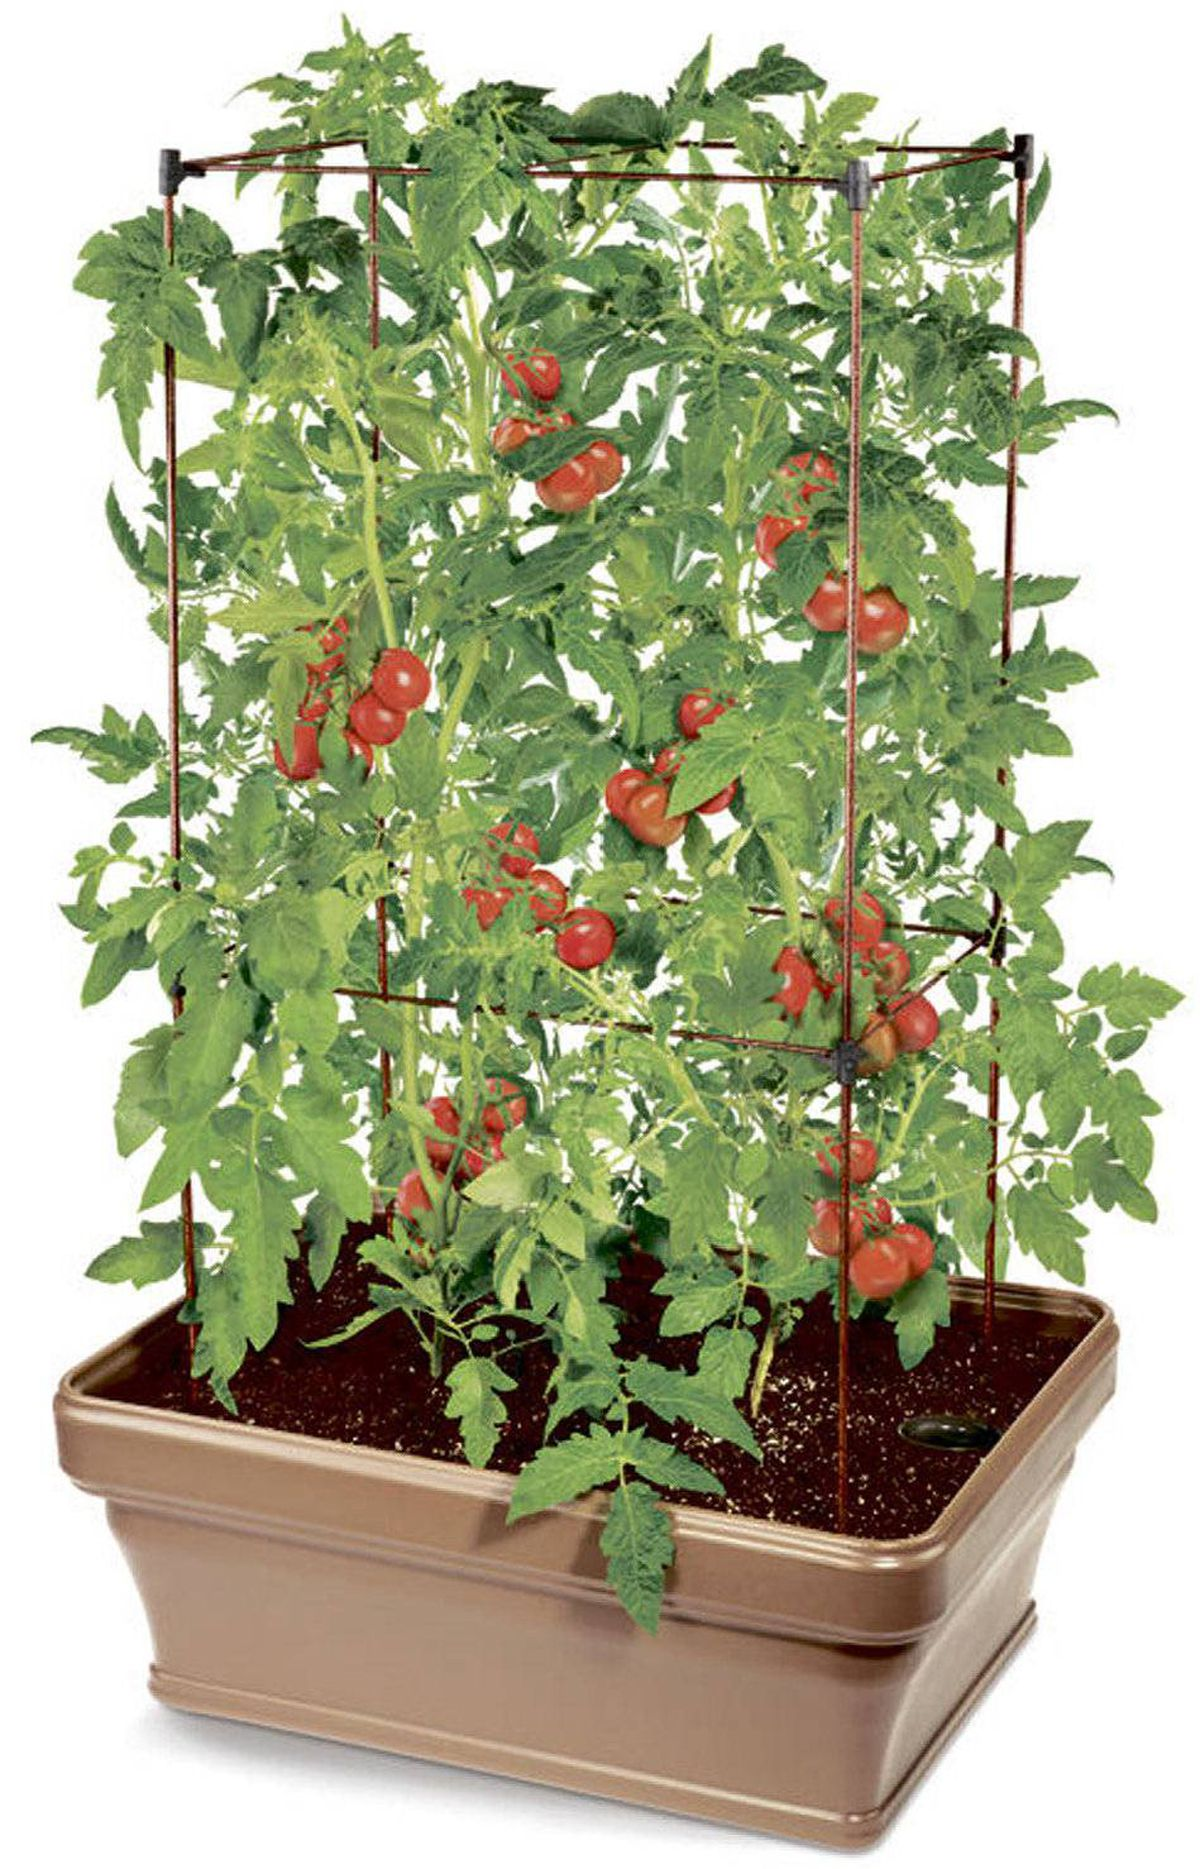 THE FOODIE PC Tomato Planter Kit, $49.99 at Loblaw garden centres across Canada (visit www.loblaw.ca for locations).